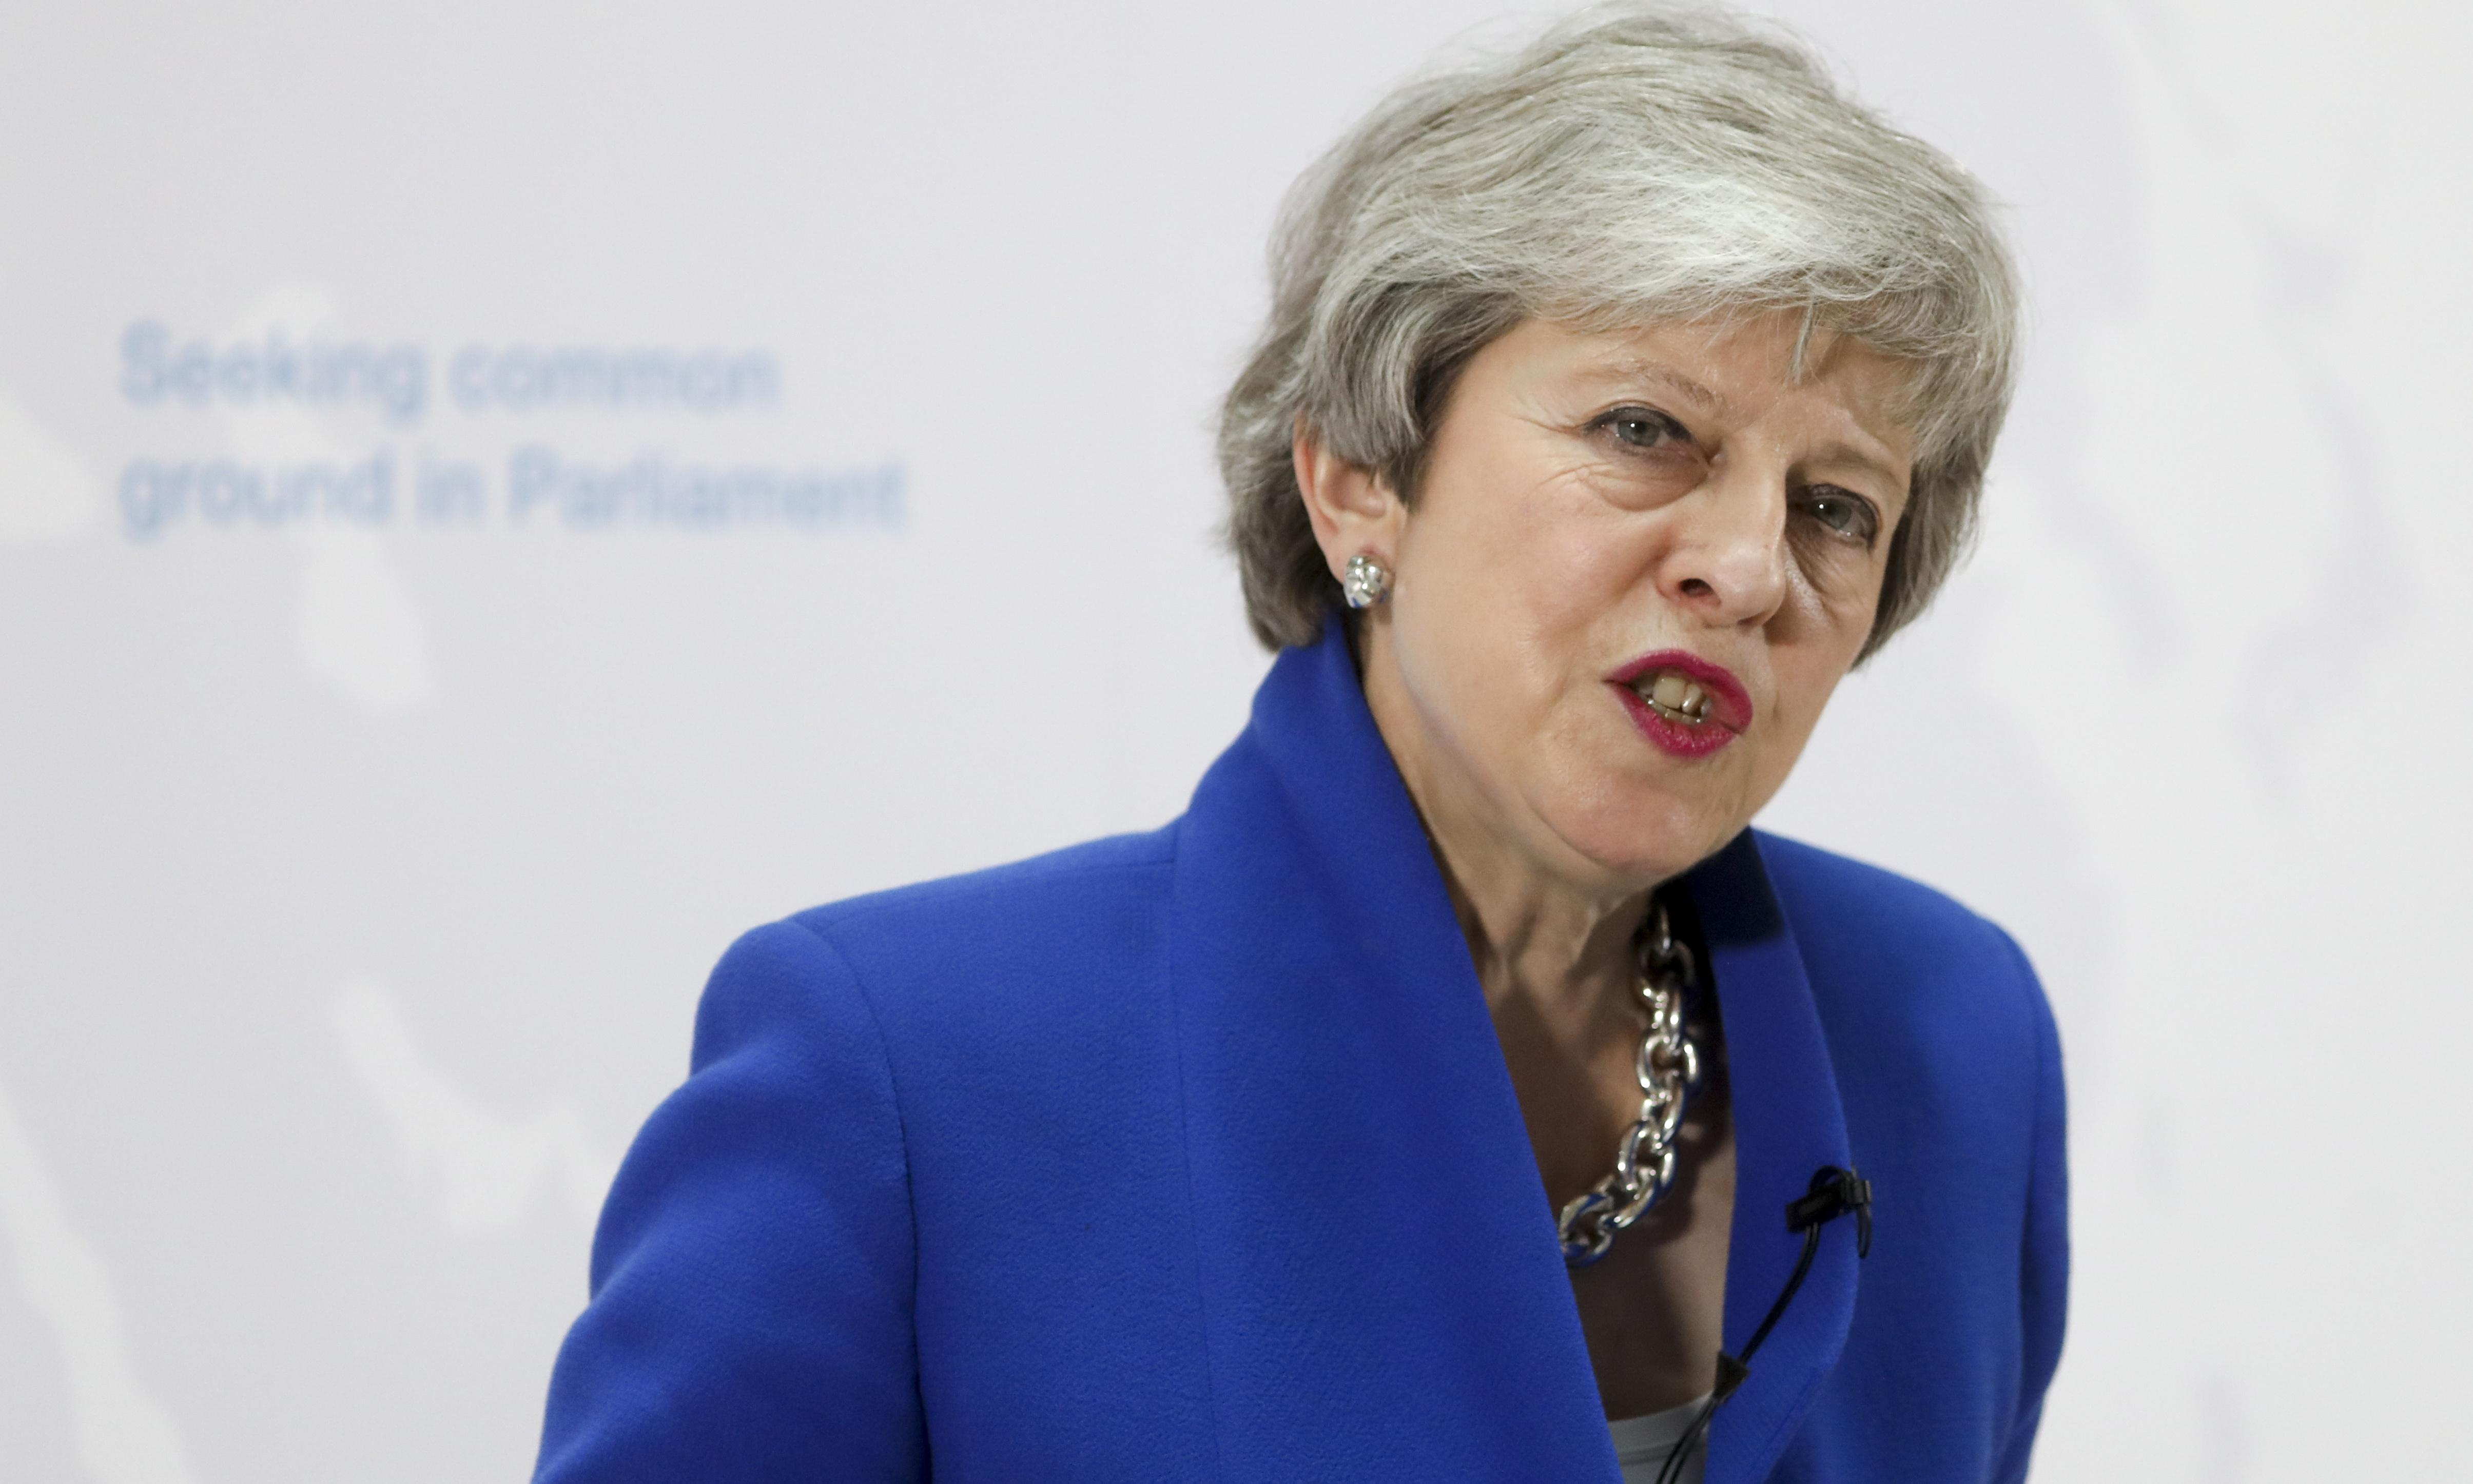 May's offer was neither 'new' nor bold. It will be her final failure